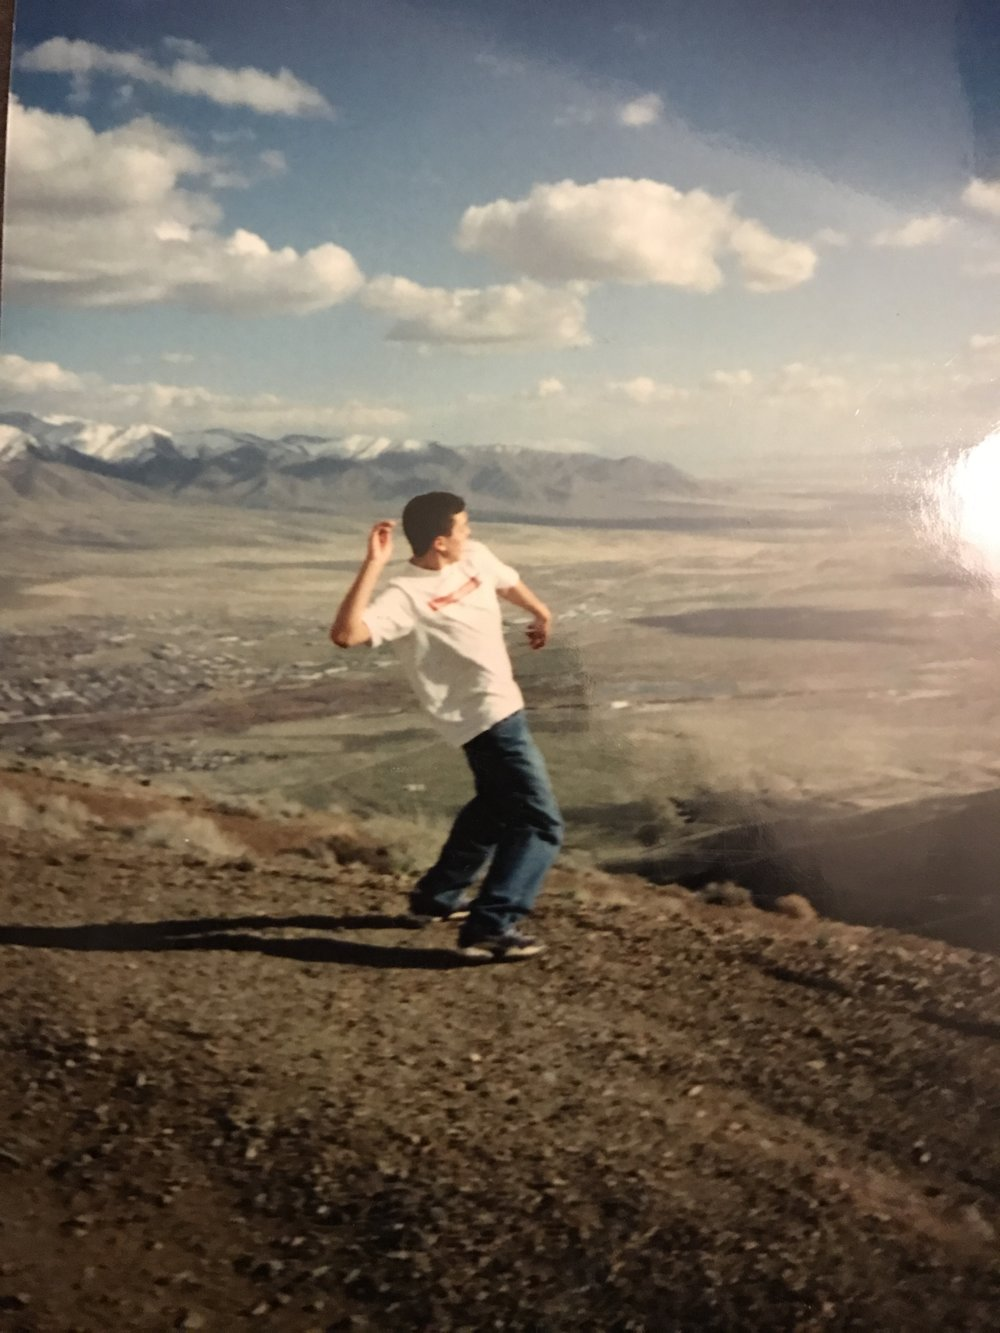 A bad photo of a photo. My best friend at the top of Winnemucca Mountain.